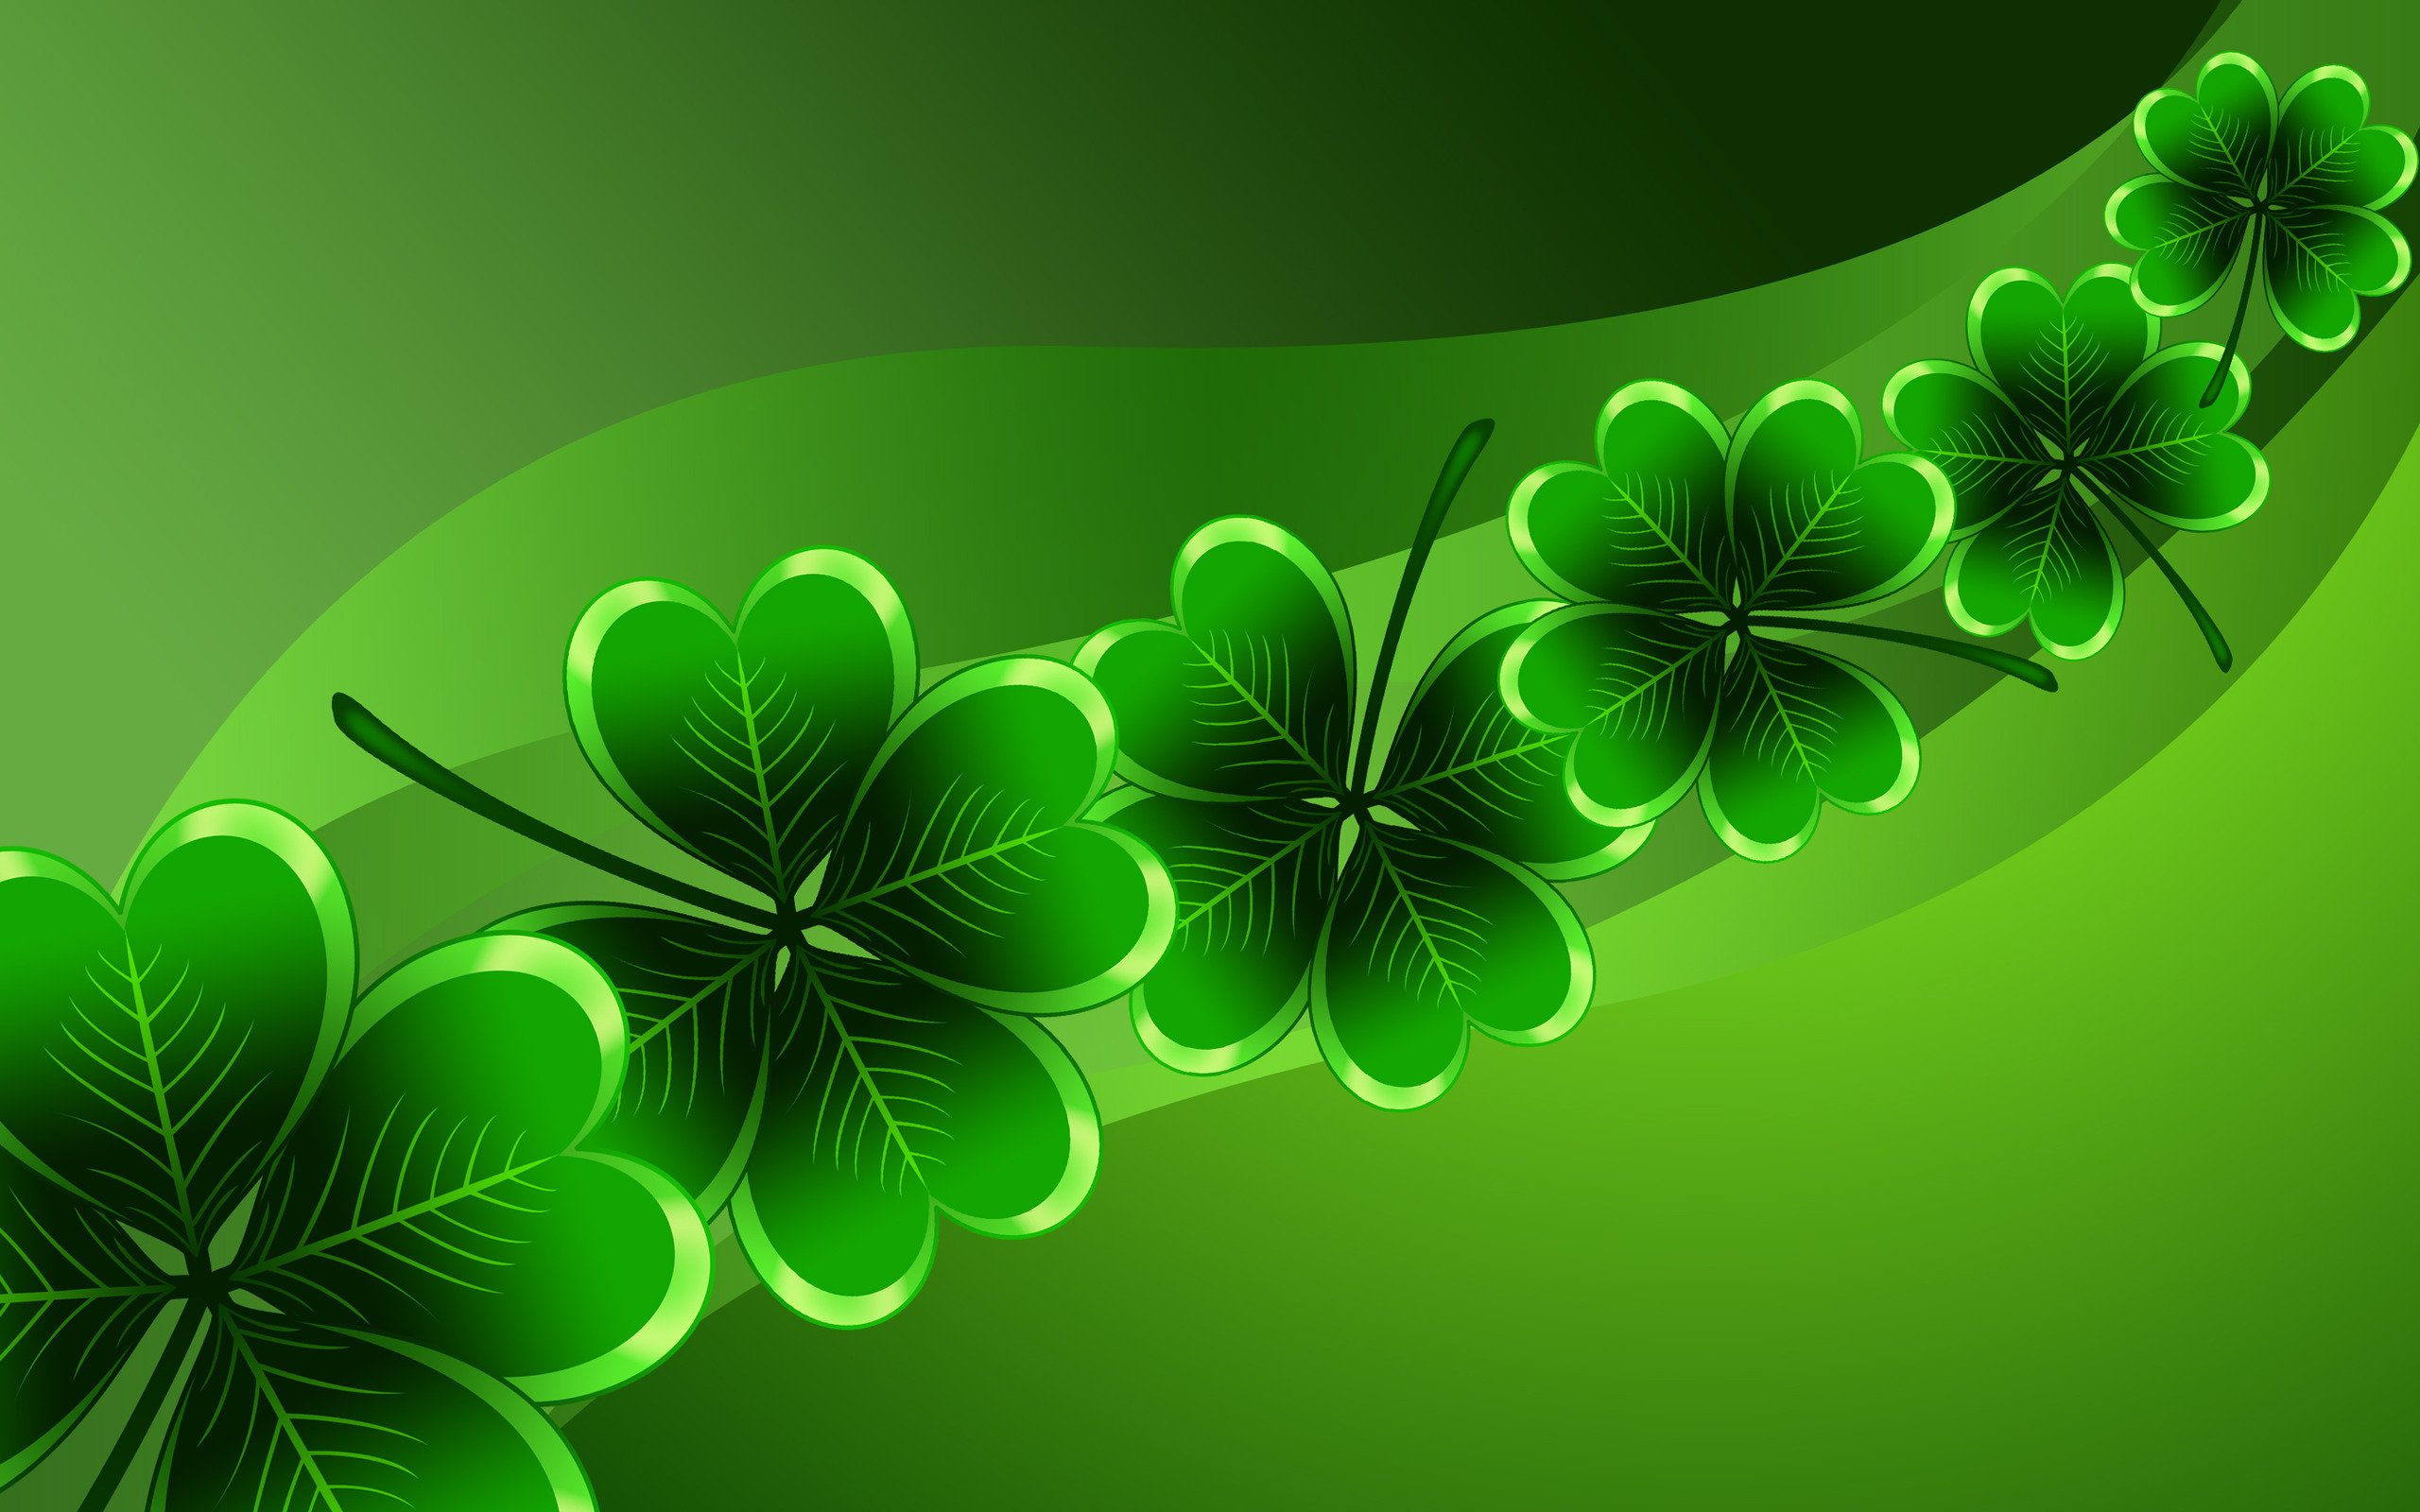 Saint Patricks Day Wallpaper 10553 2560x1600